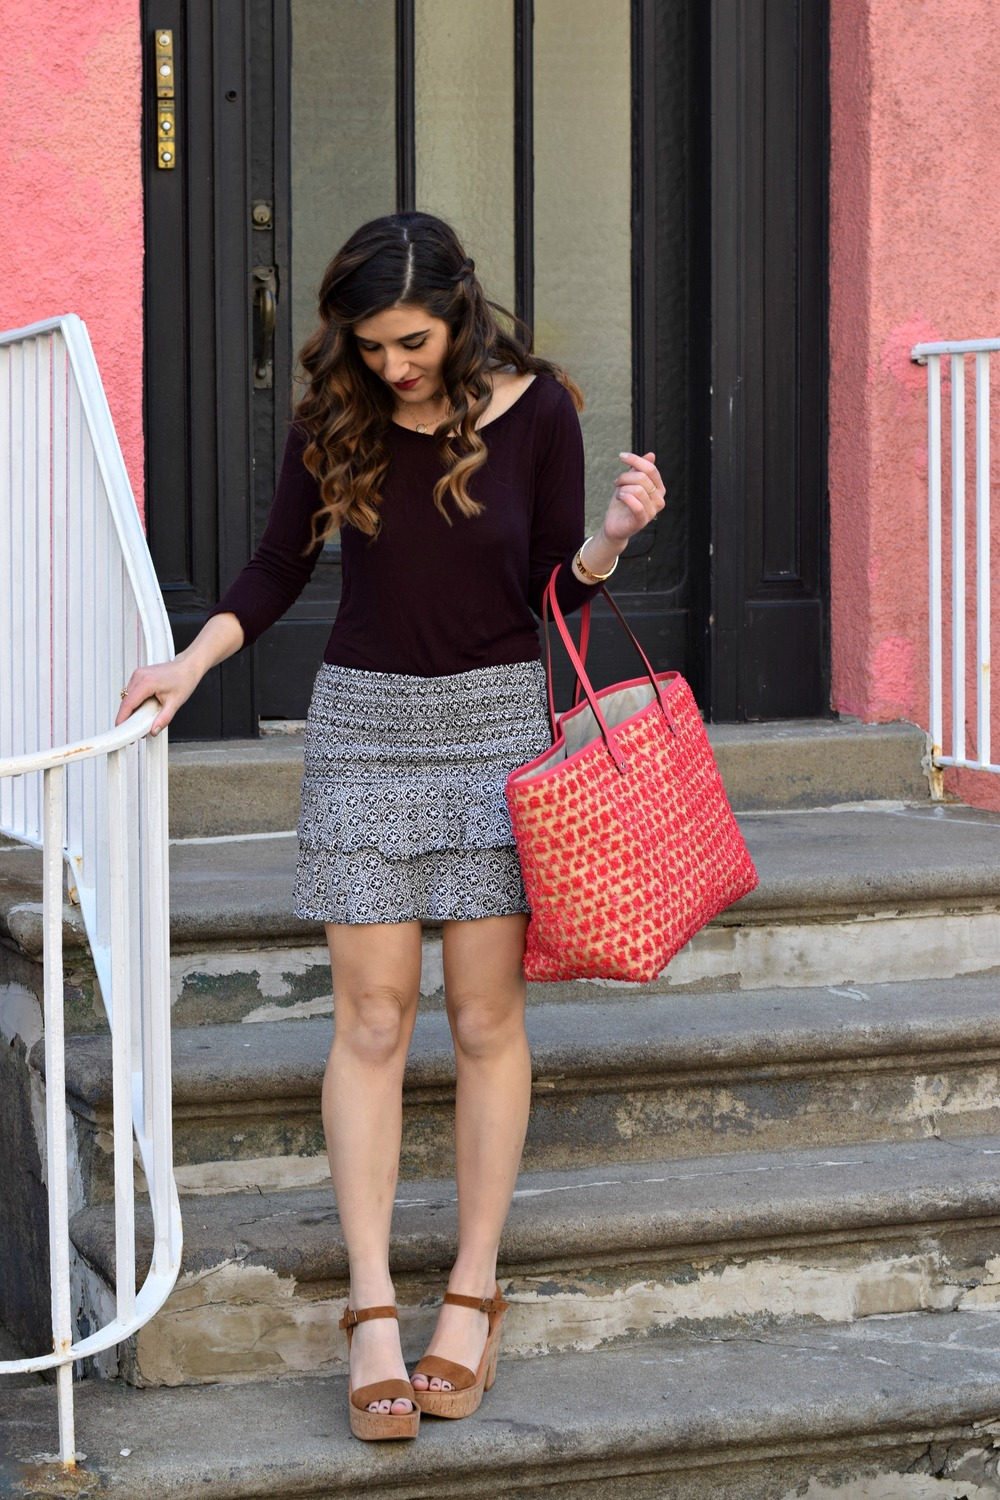 Printed Mini Skirt Henri Bendel Pom Pom Tote Louboutins & Love Fashion Blog Esther Santer NYC Street Style Blogger Outfit OOTD Summer Look Pretty Beautiful Inspo Photoshoot Hair Girl Women Shoes Wedges Sandals Colorful Pink Purple Shopping Beach Bag.jpg